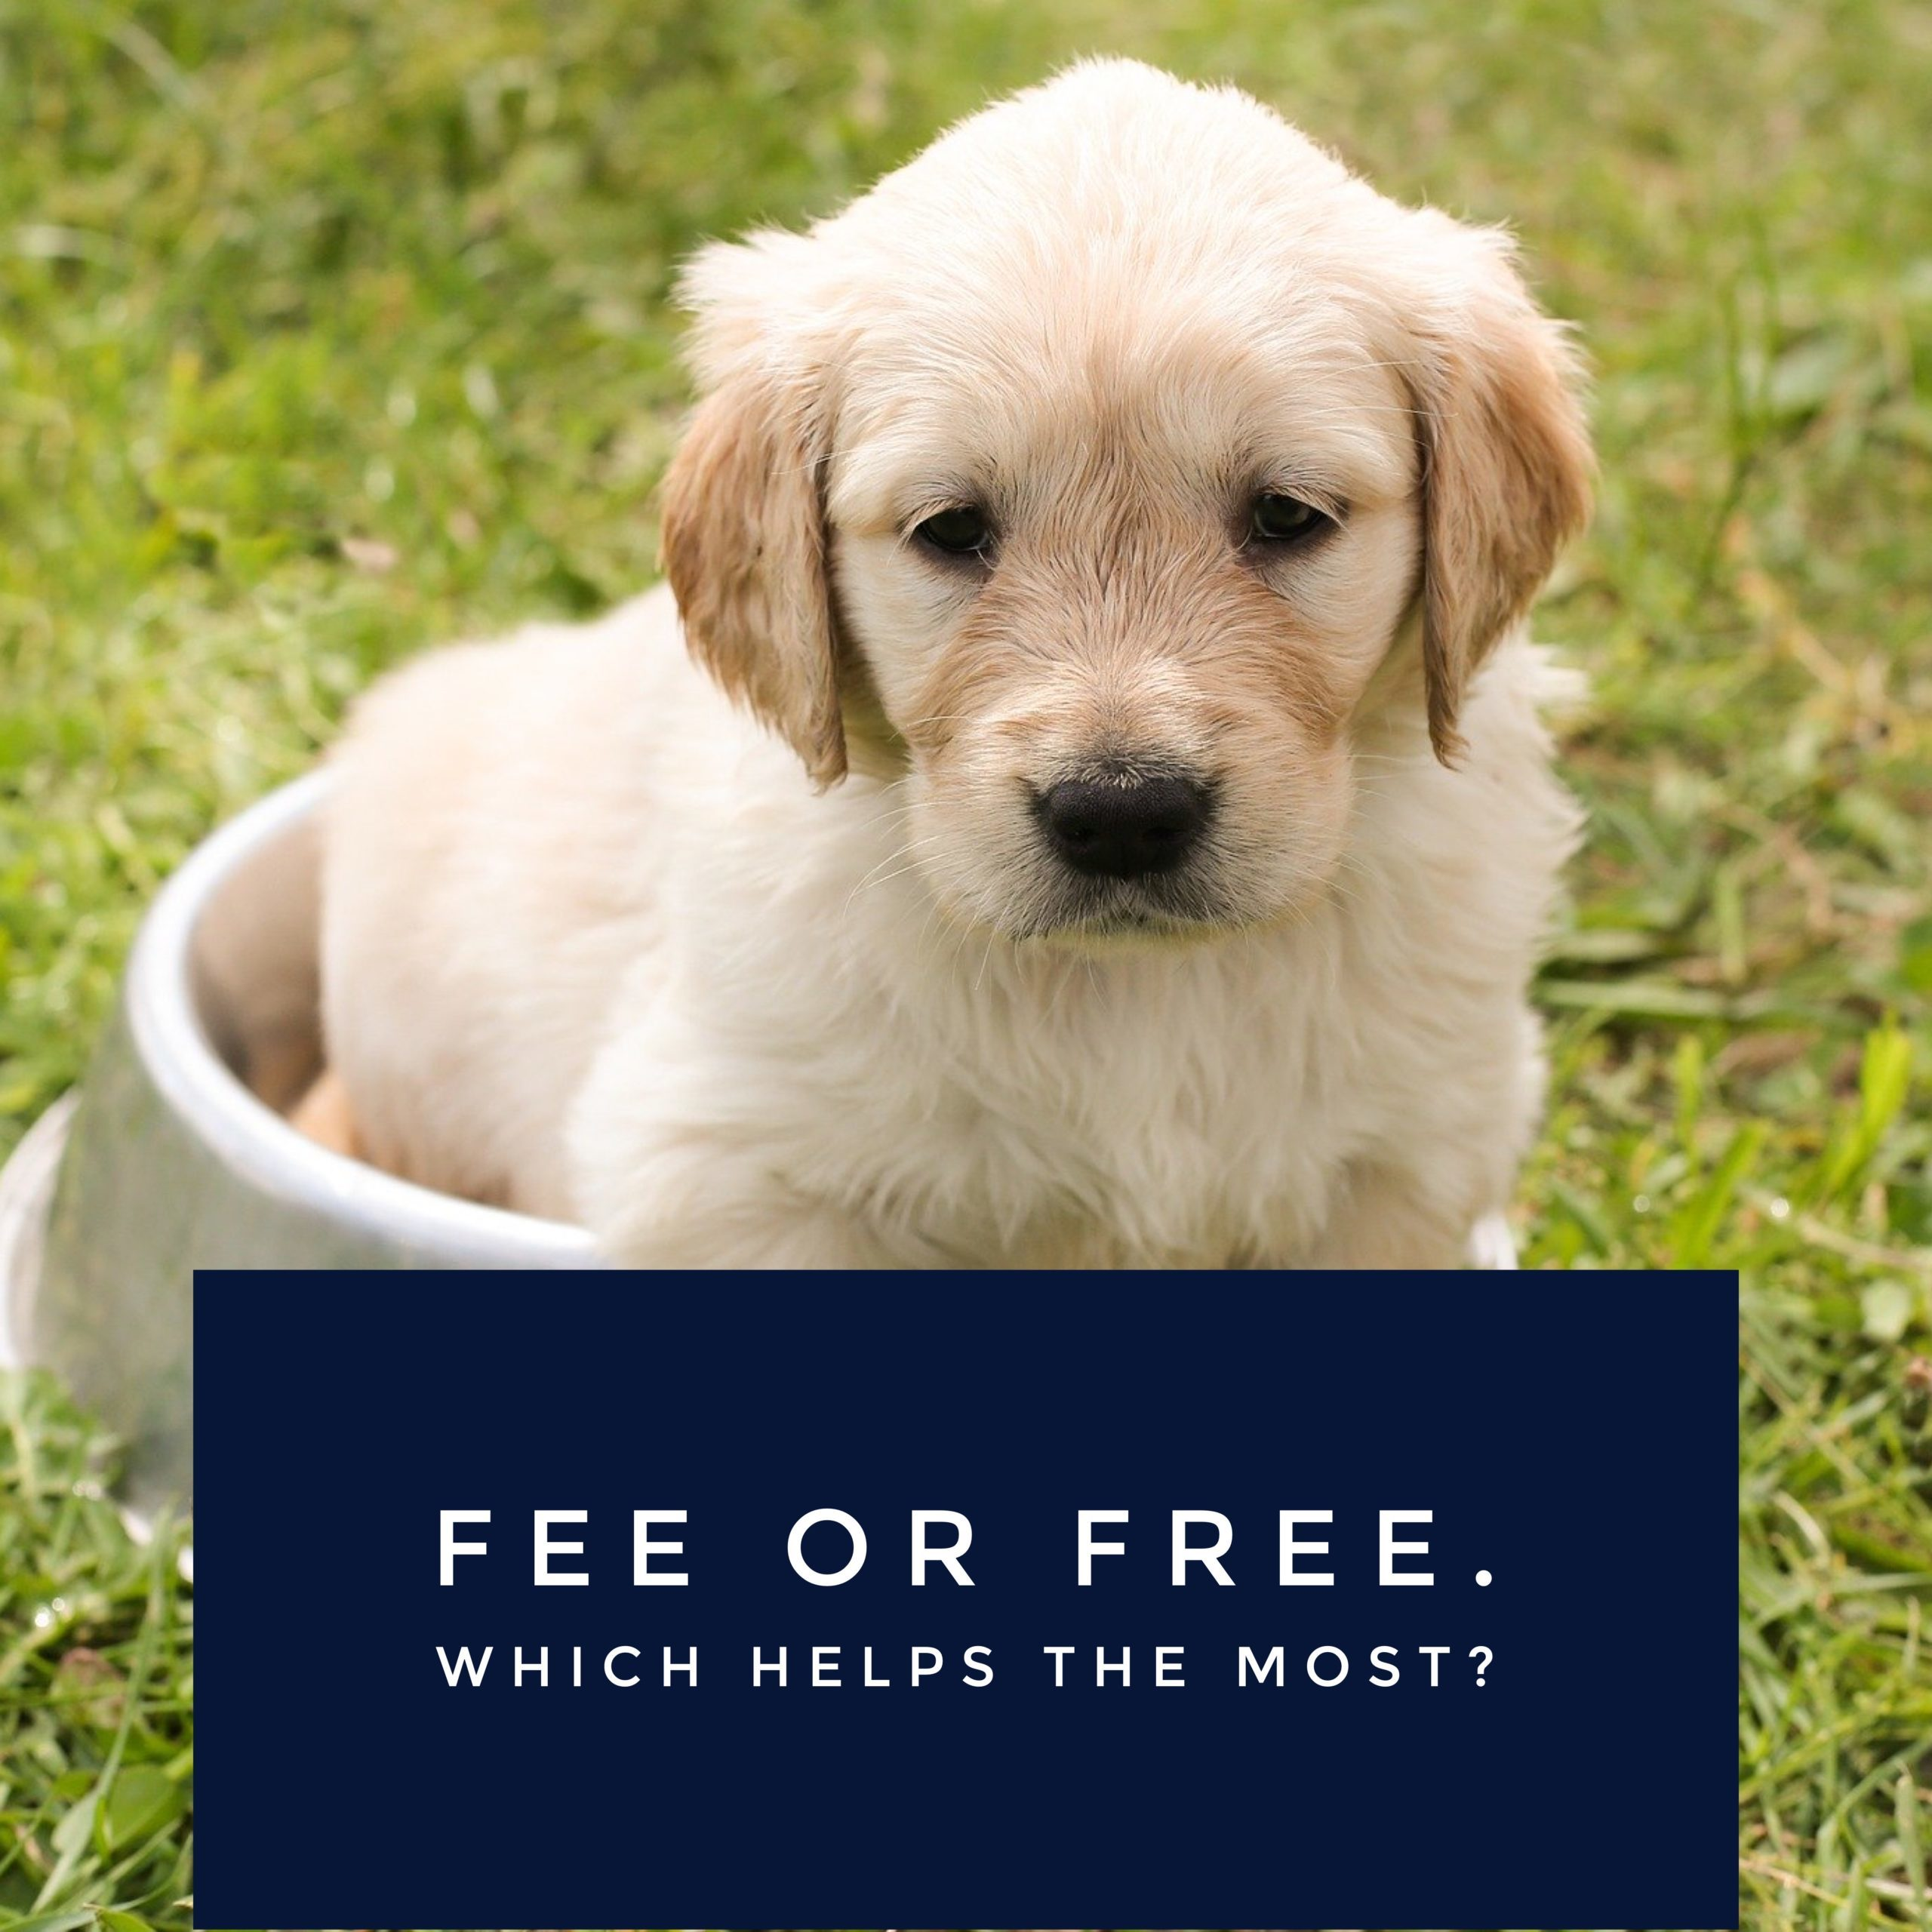 Fee or Free? Which Helps The Most?